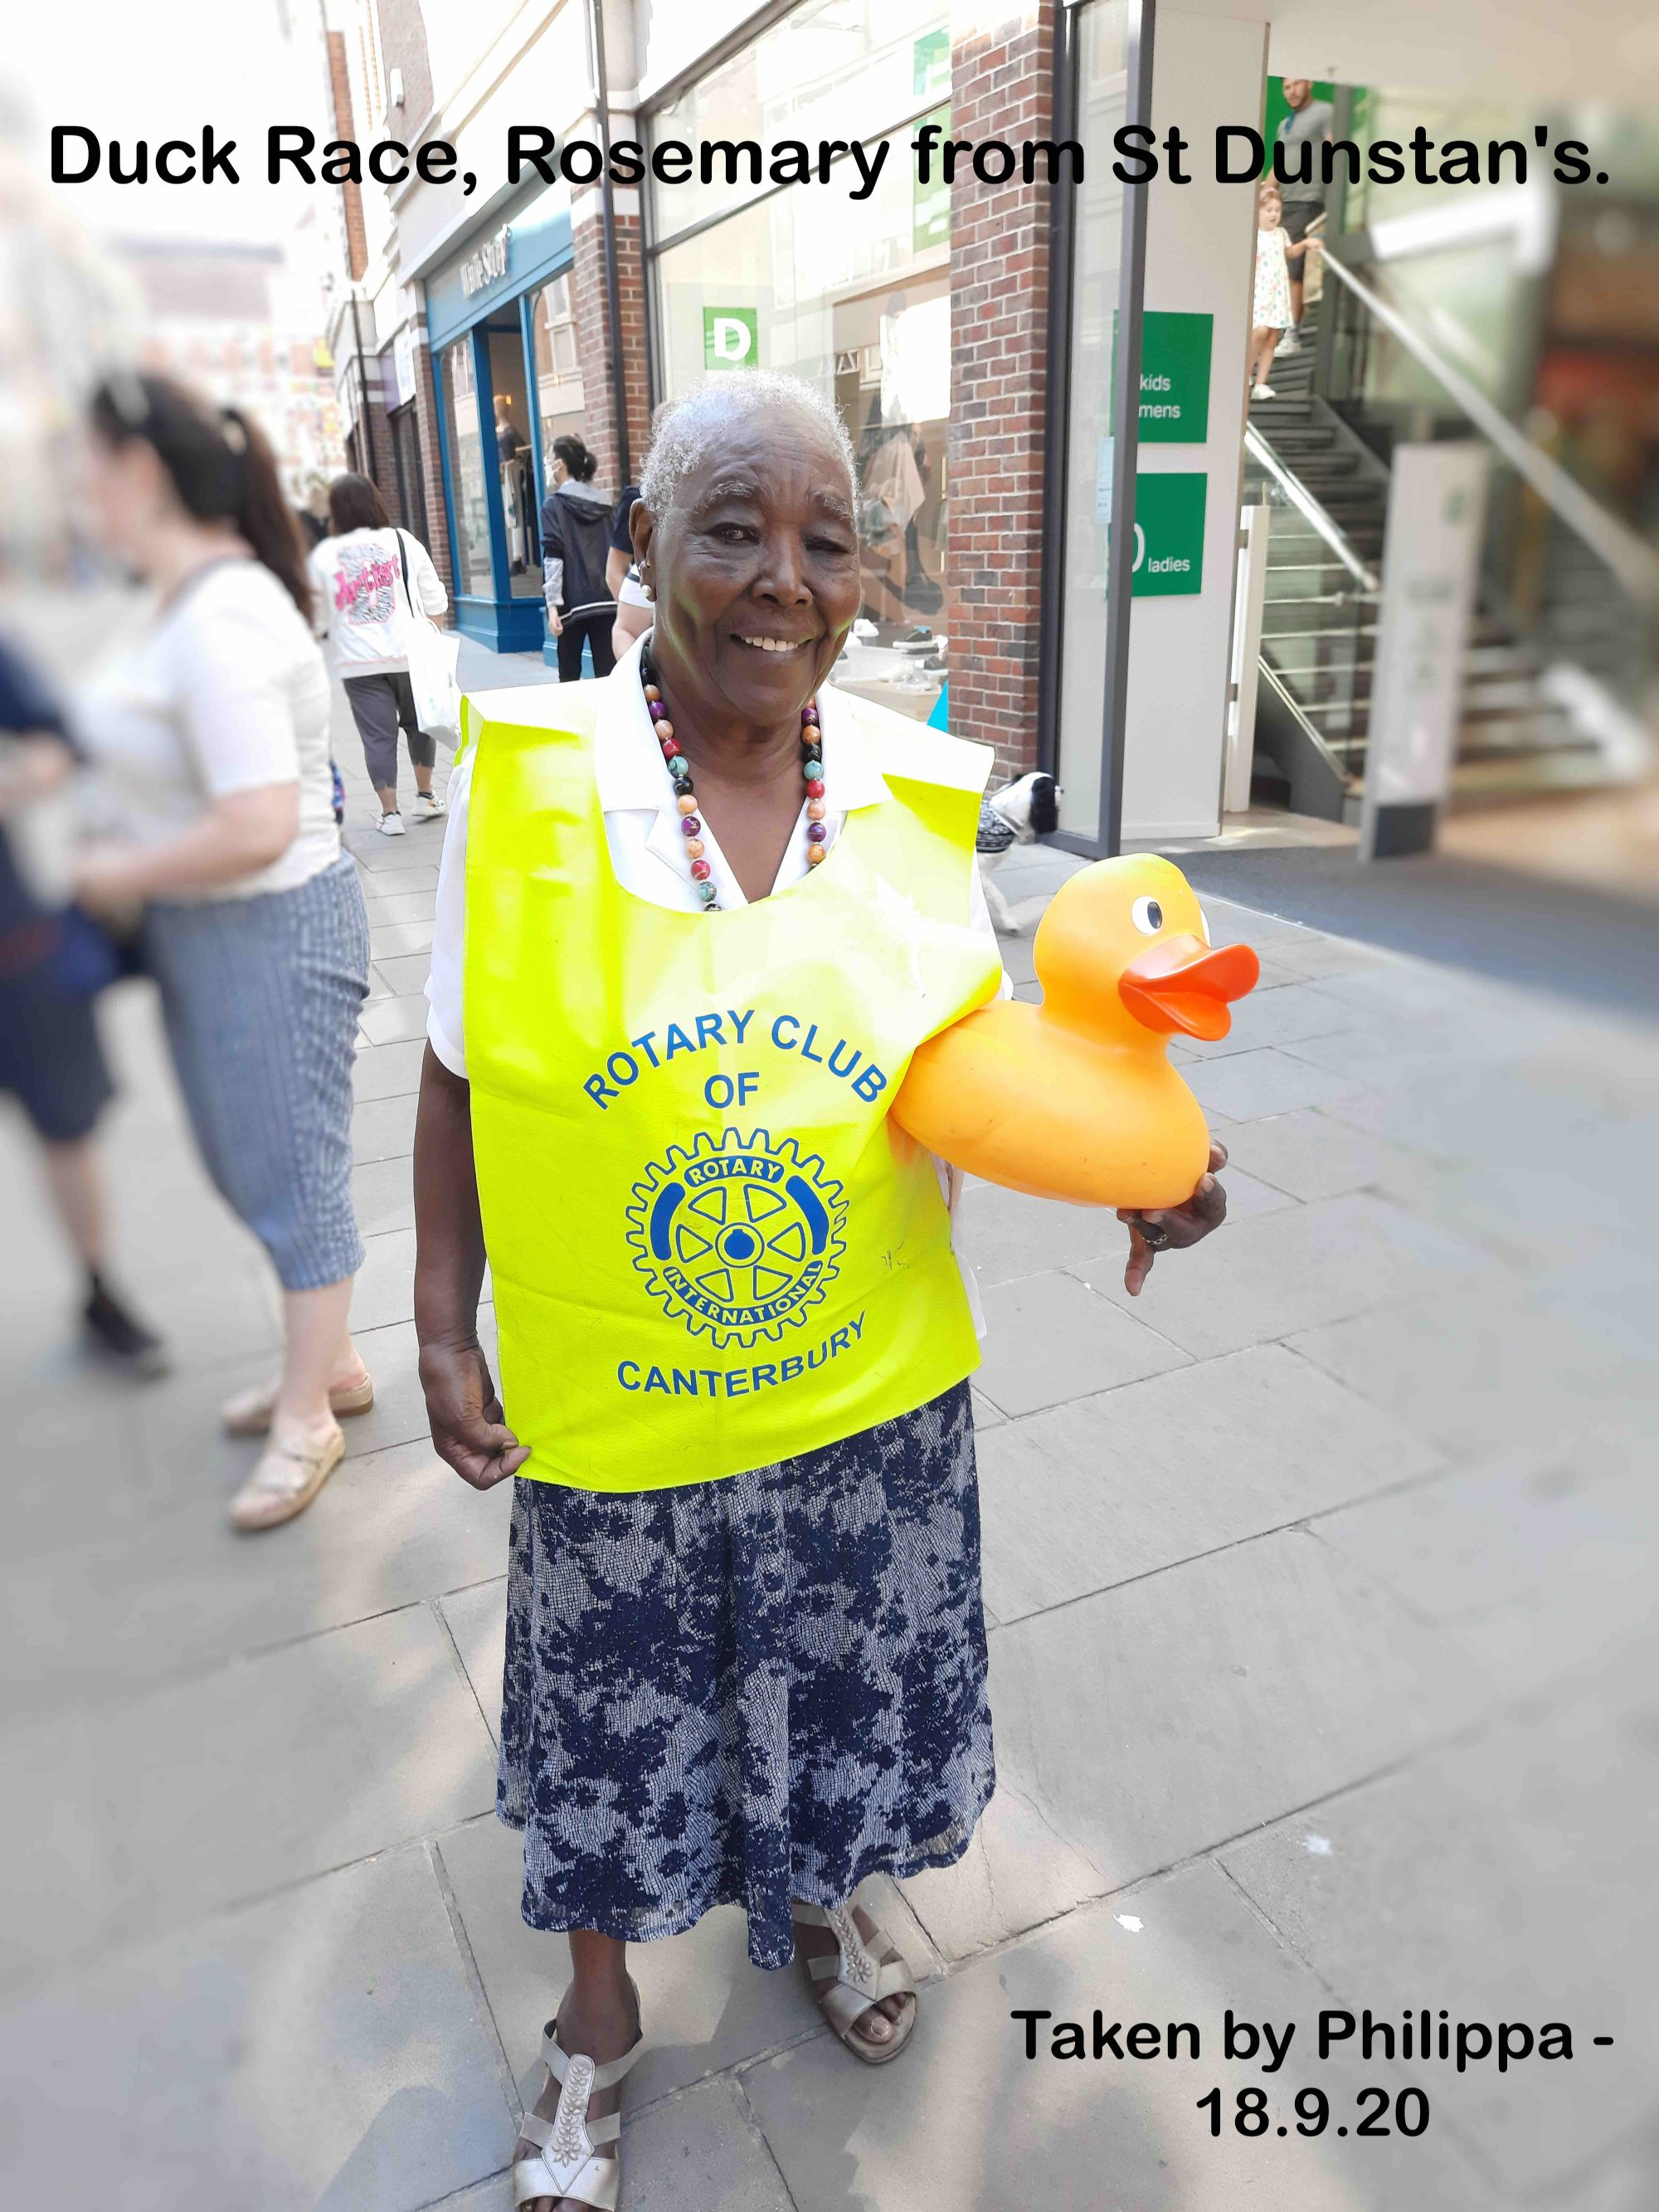 Duck Race, Rosemary from St Dunstan's.